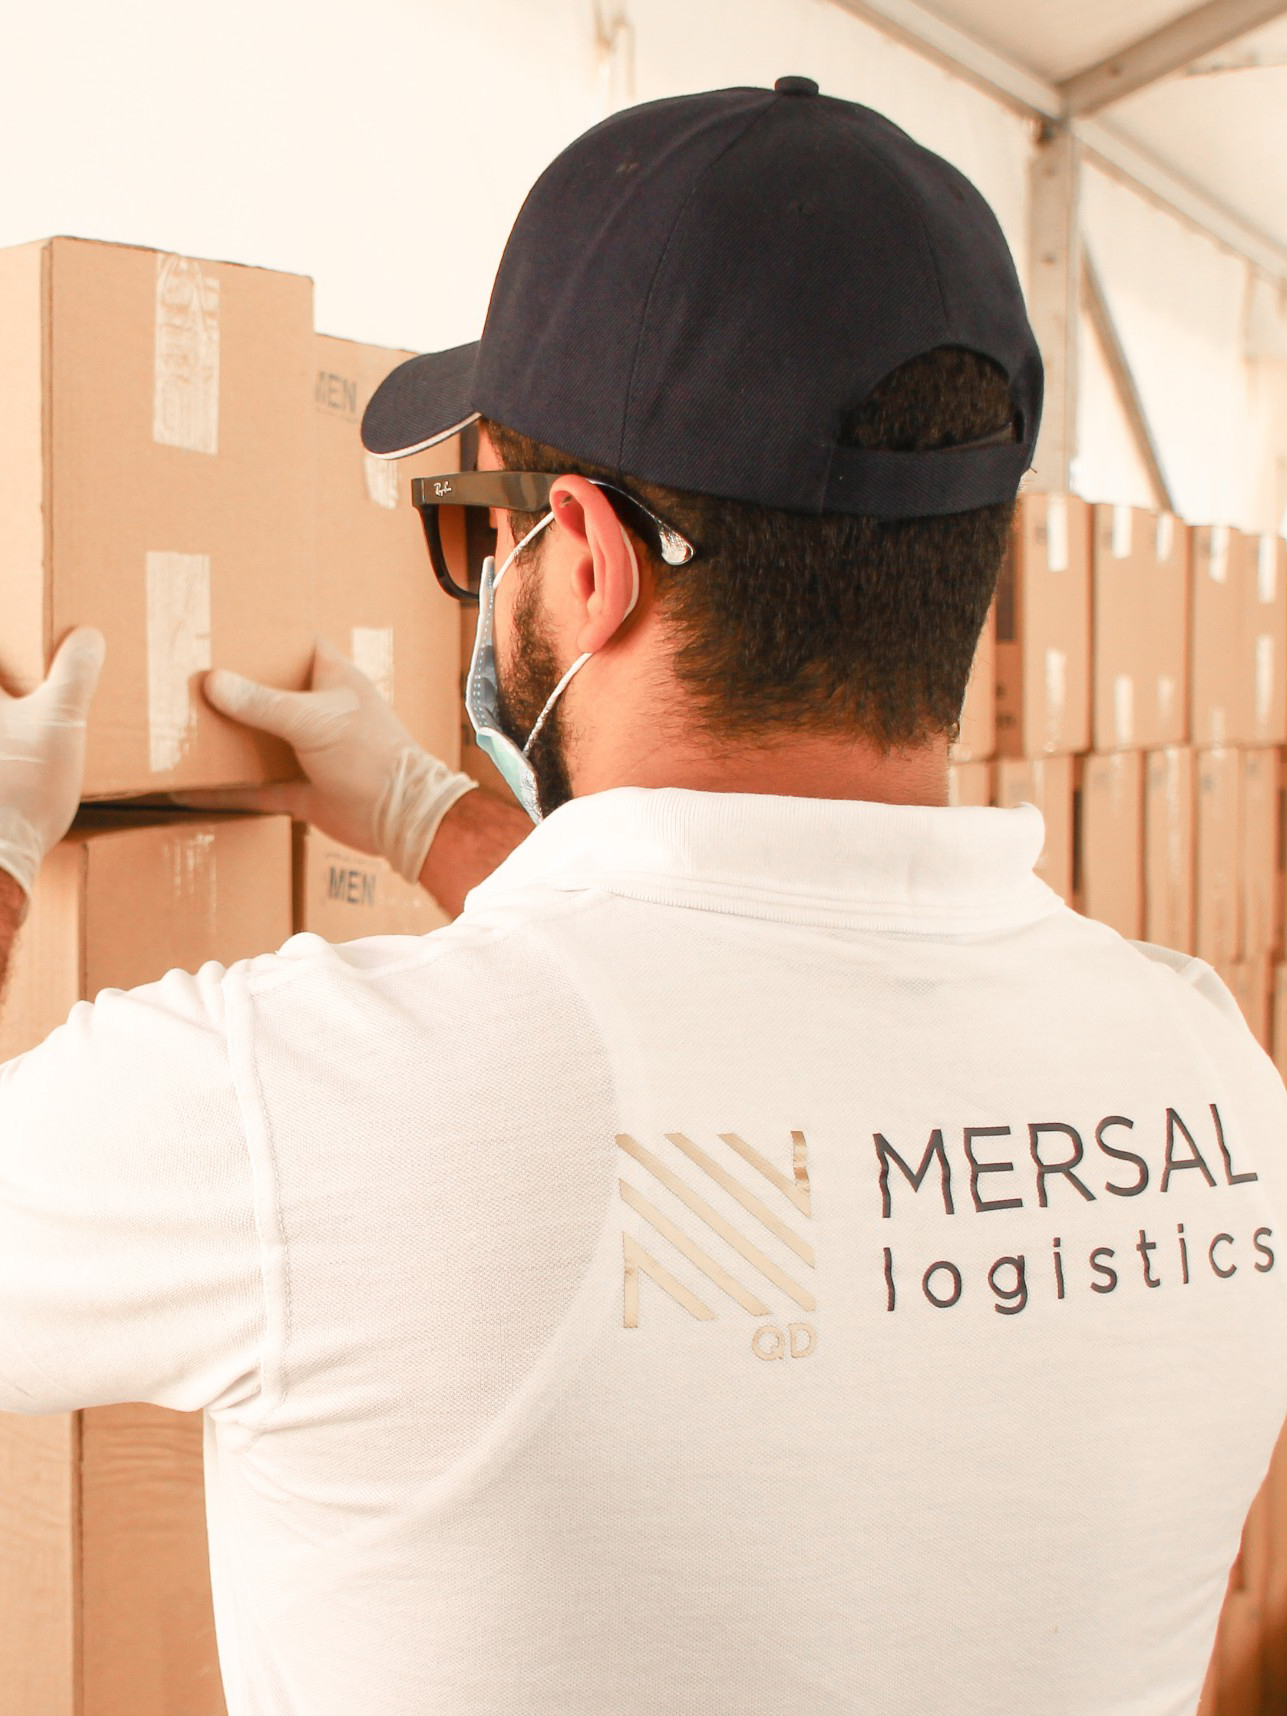 https://mersallogisticservices.com/wp-content/uploads/2020/05/Mersal-Logistics-Services-Libya-1.jpg